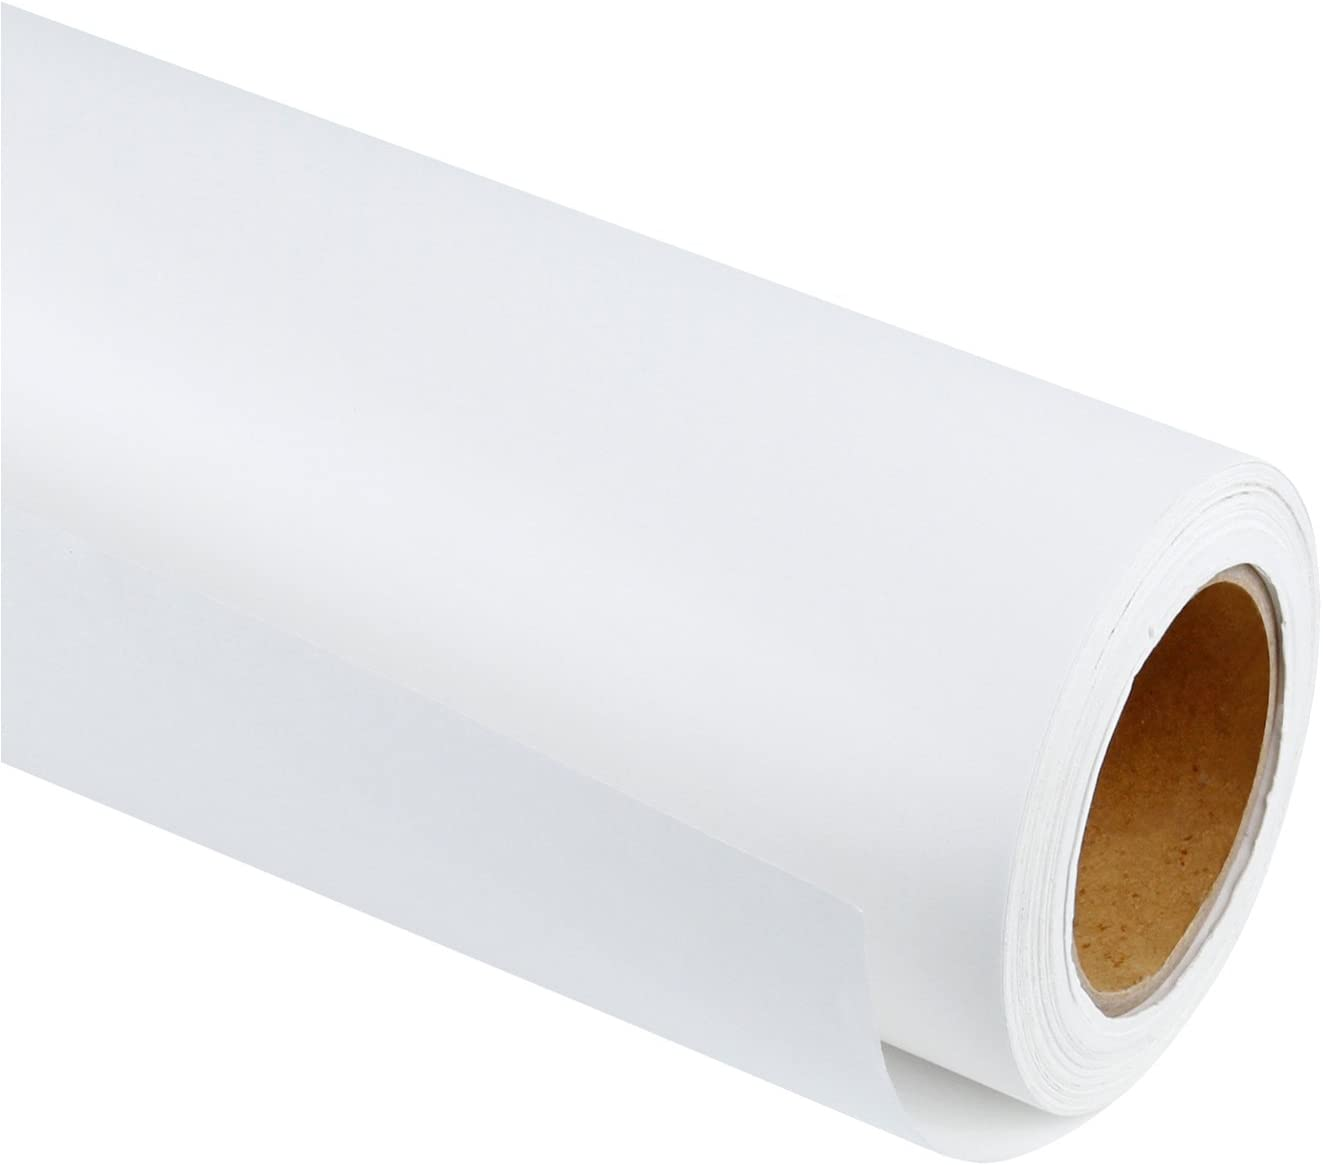 RUSPEPA White Kraft Paper Roll - 36 inch x 100 Feet - Recyclable Paper Perfect for Gift Wrapping, Craft, Packing, Floor Covering, Dunnage, Parcel, Table Runner